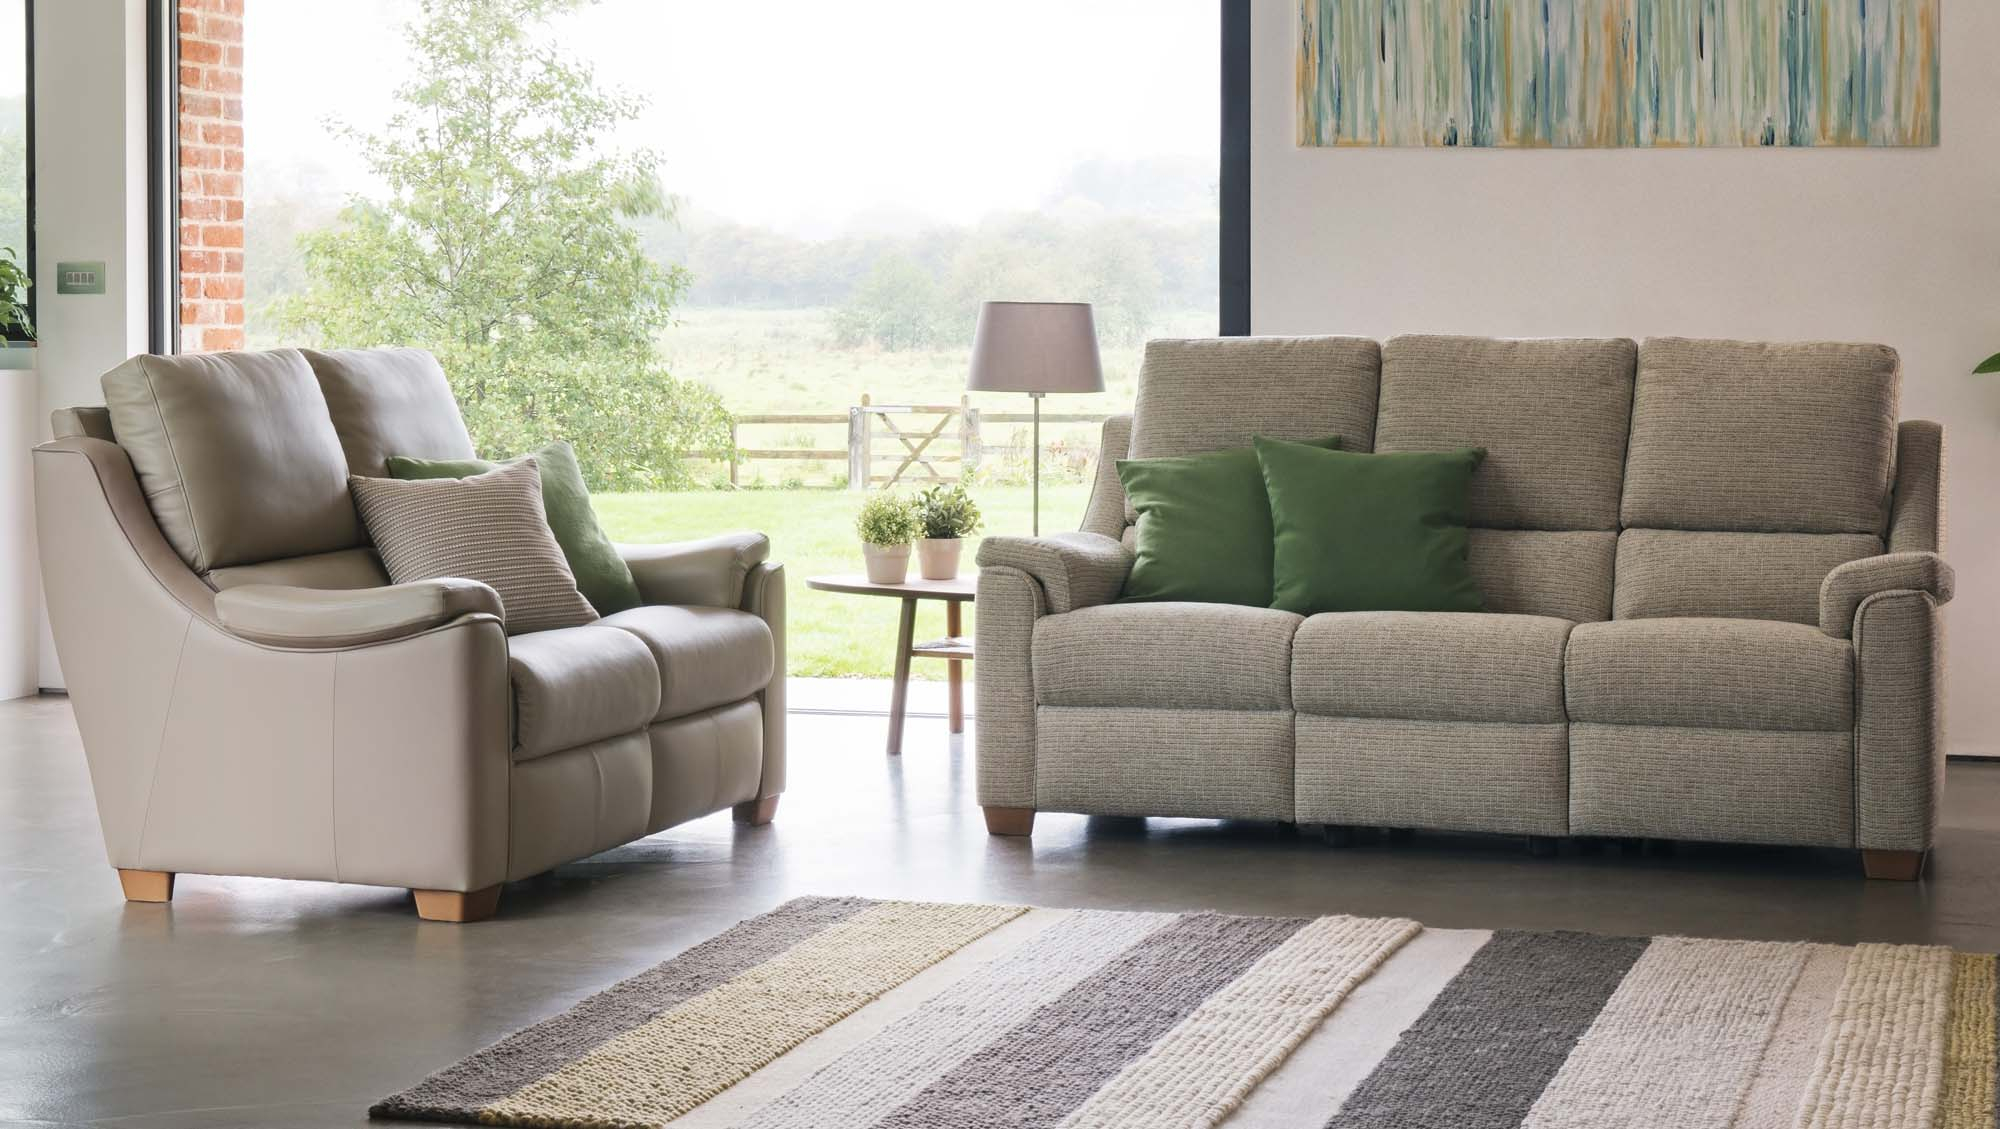 Parker Knoll Albany – Fabric Ranges – Sofas & Chairs | Tr Hayes With Regard To Parker Sofa Chairs (Image 10 of 25)